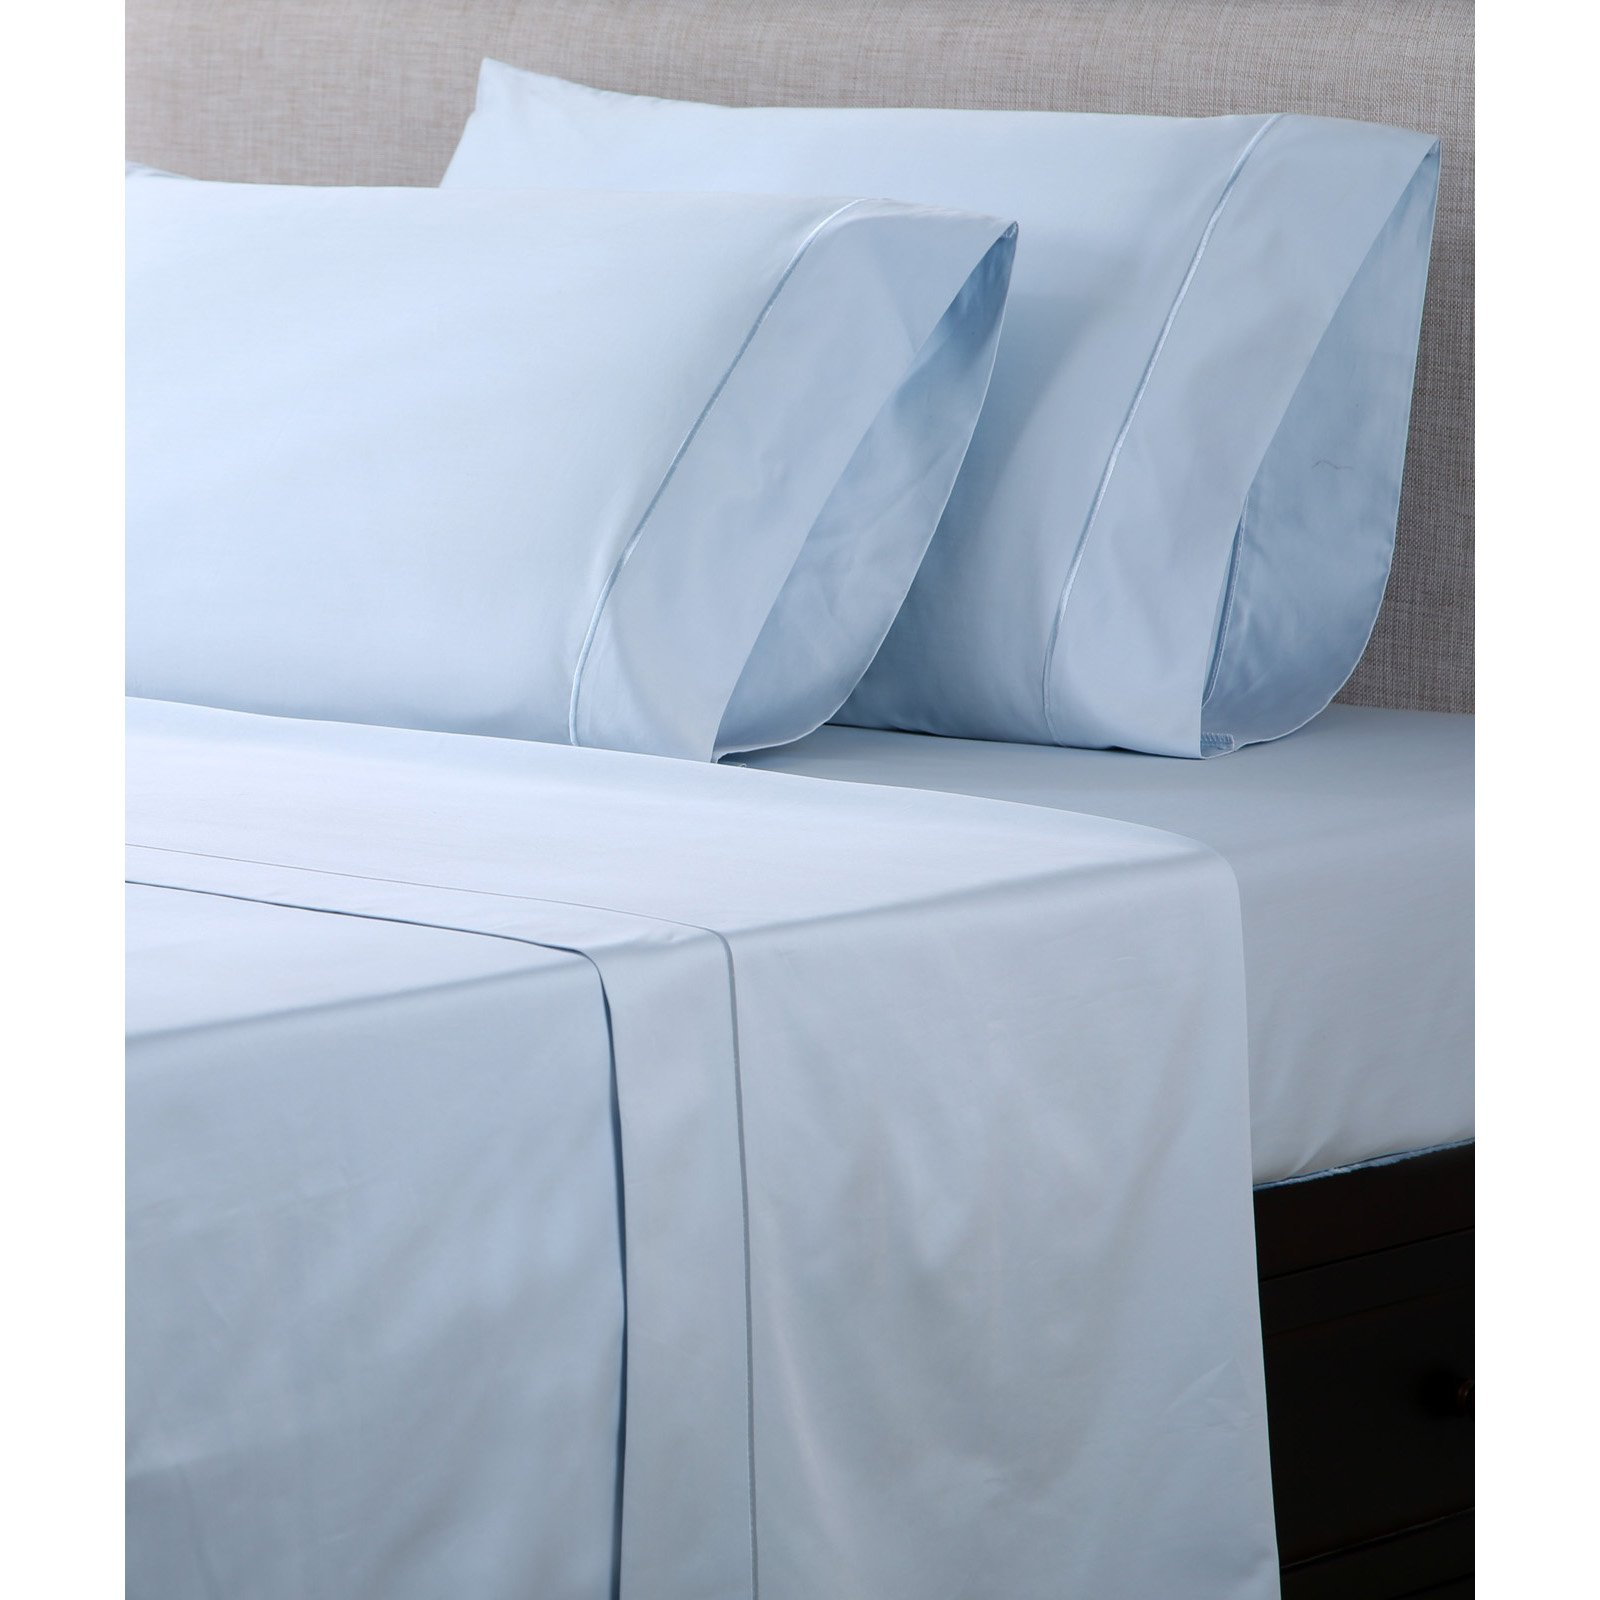 1000 Thread Count Sheets King 1000 Thread Count Sheet Set By Affluence Walmart